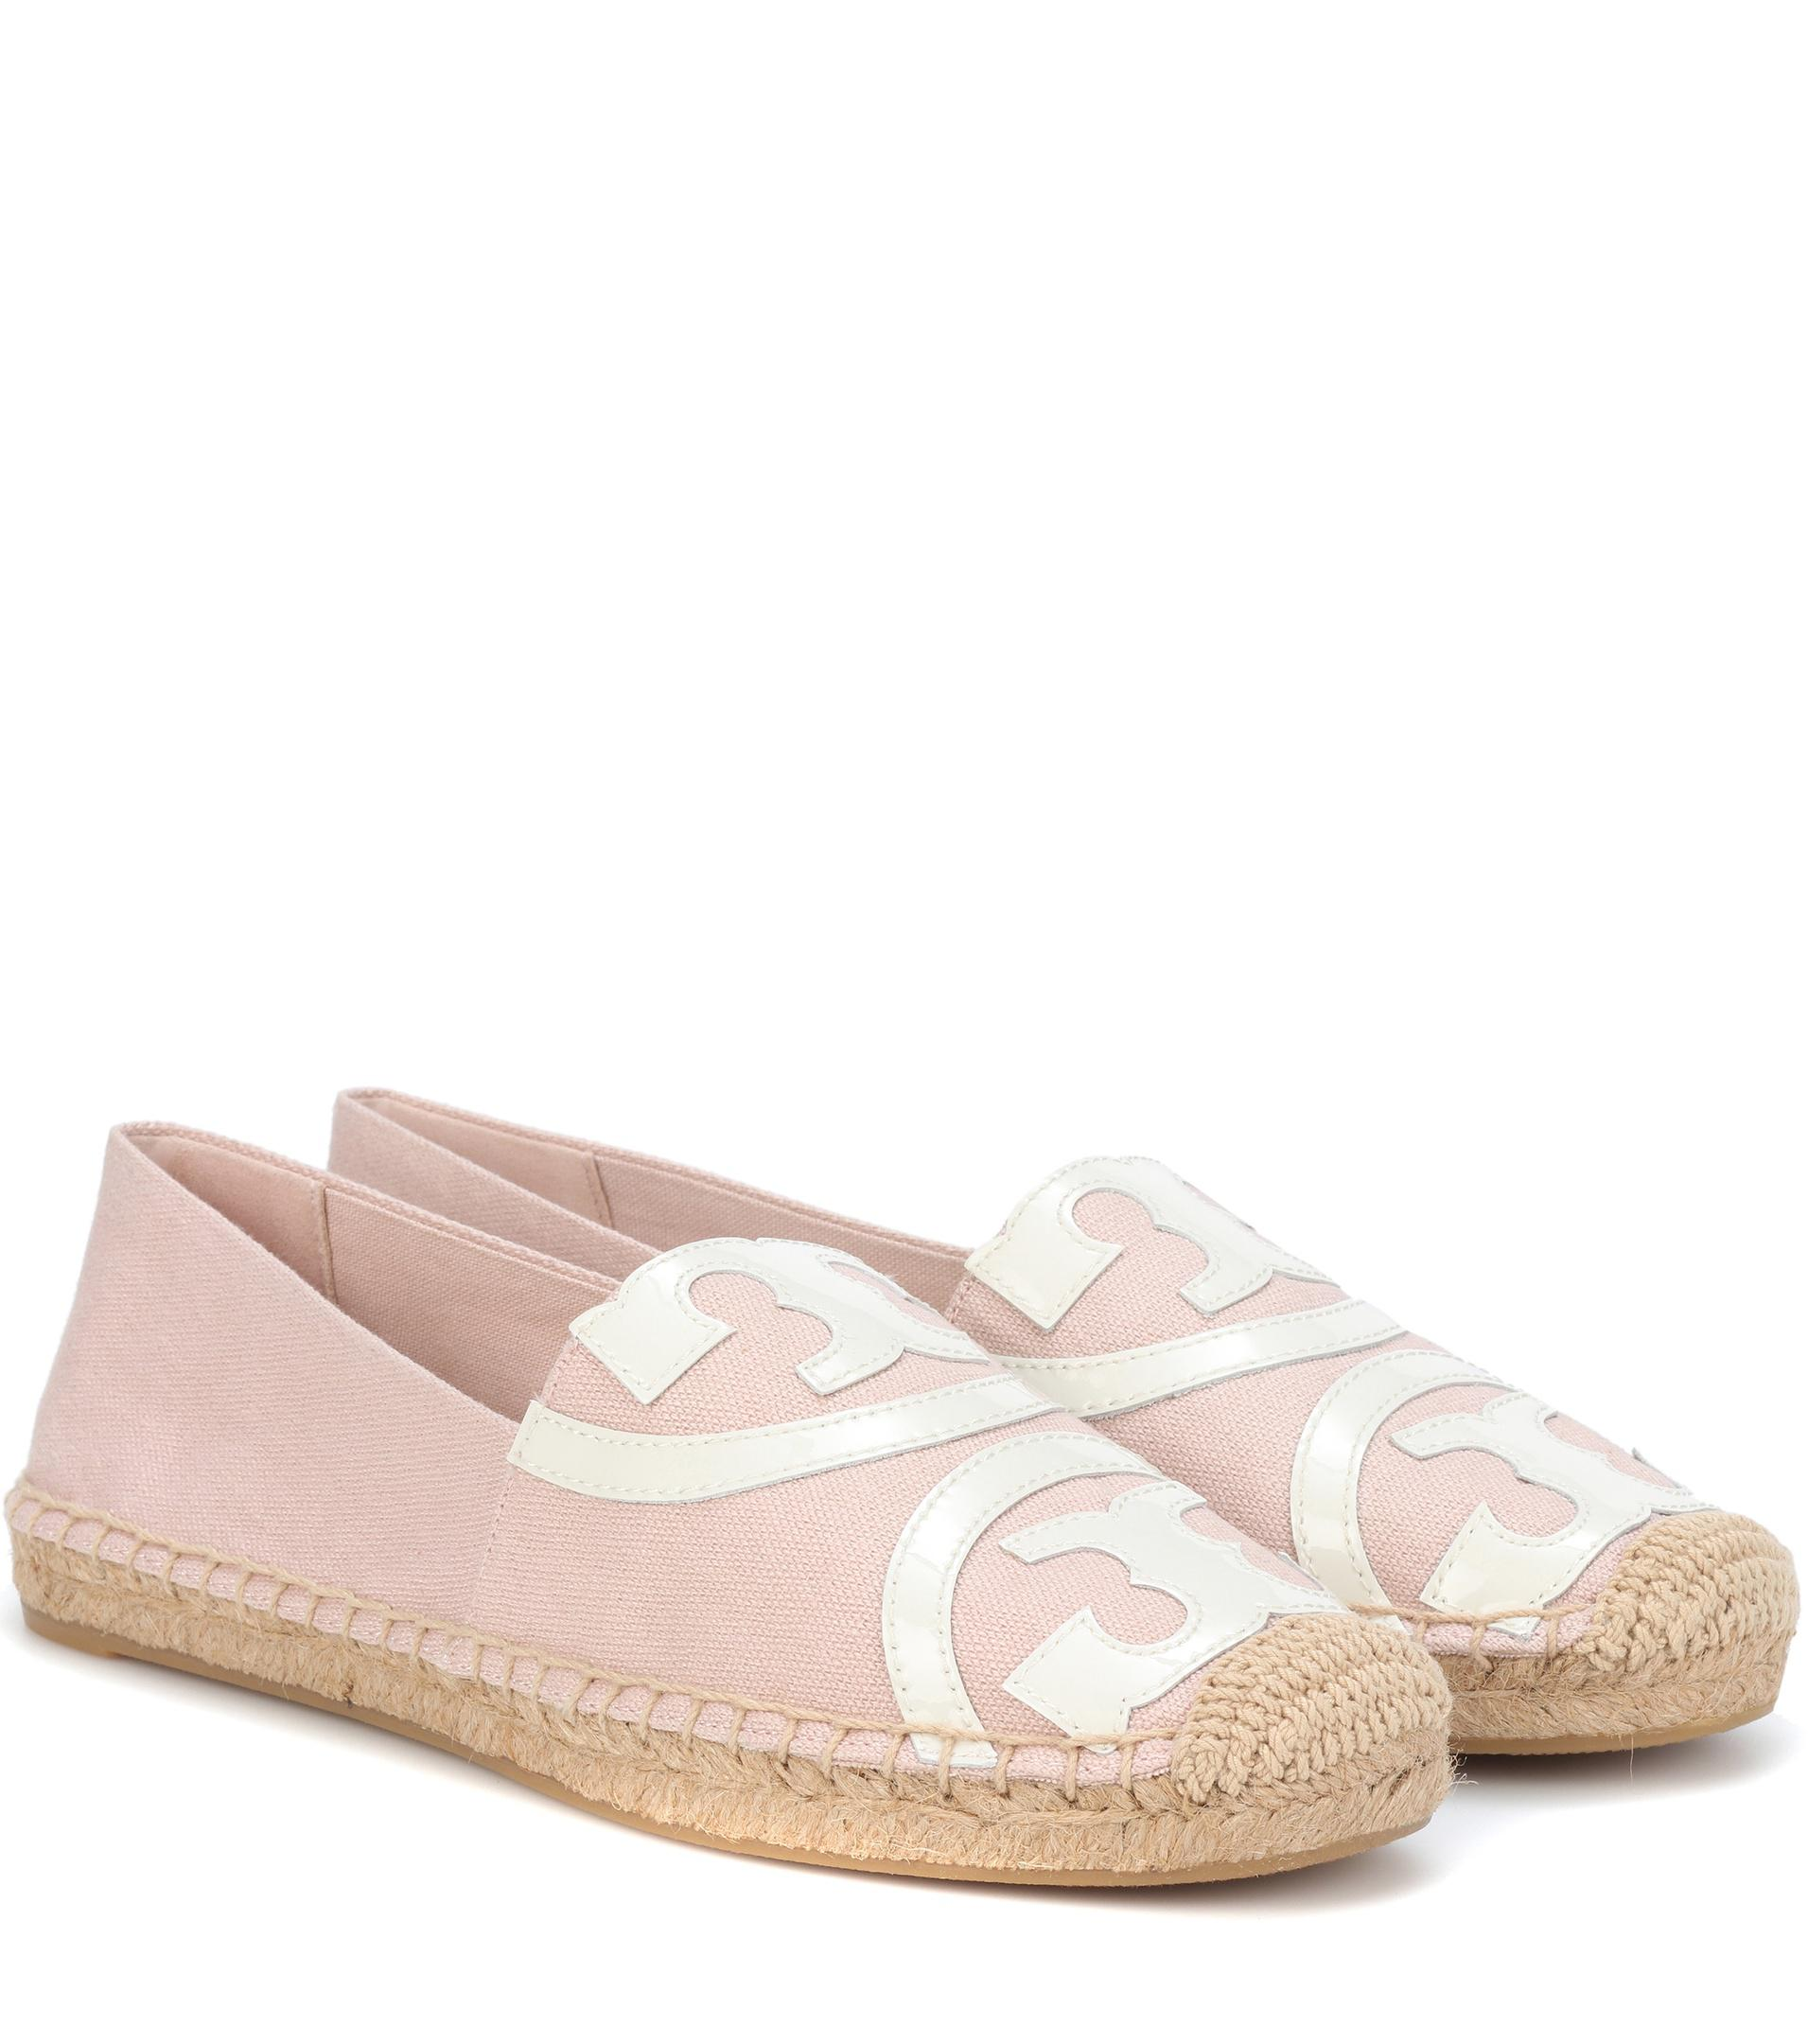 8aa5fba28846d Lyst - Tory Burch Poppy Leather-trimmed Espadrille in Pink